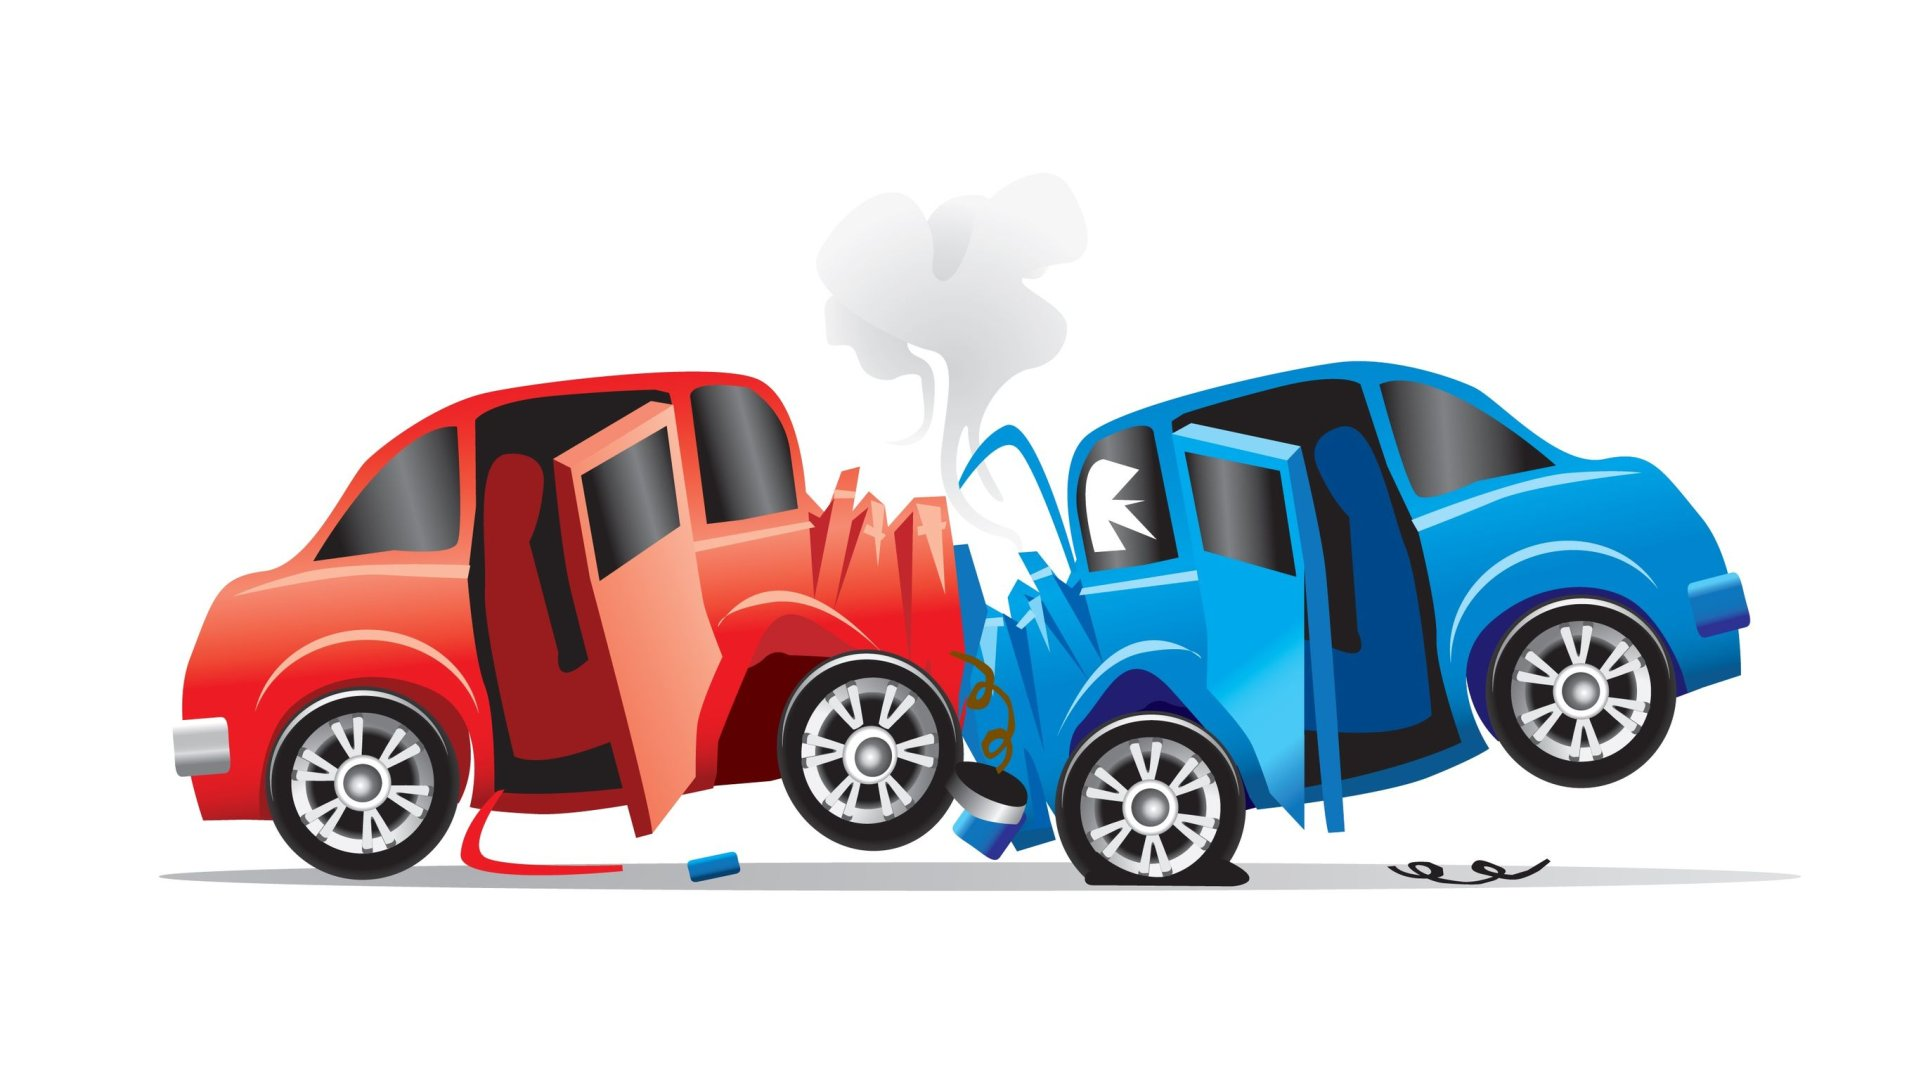 What To Do After Witnessing a Car Accident - autoevolution